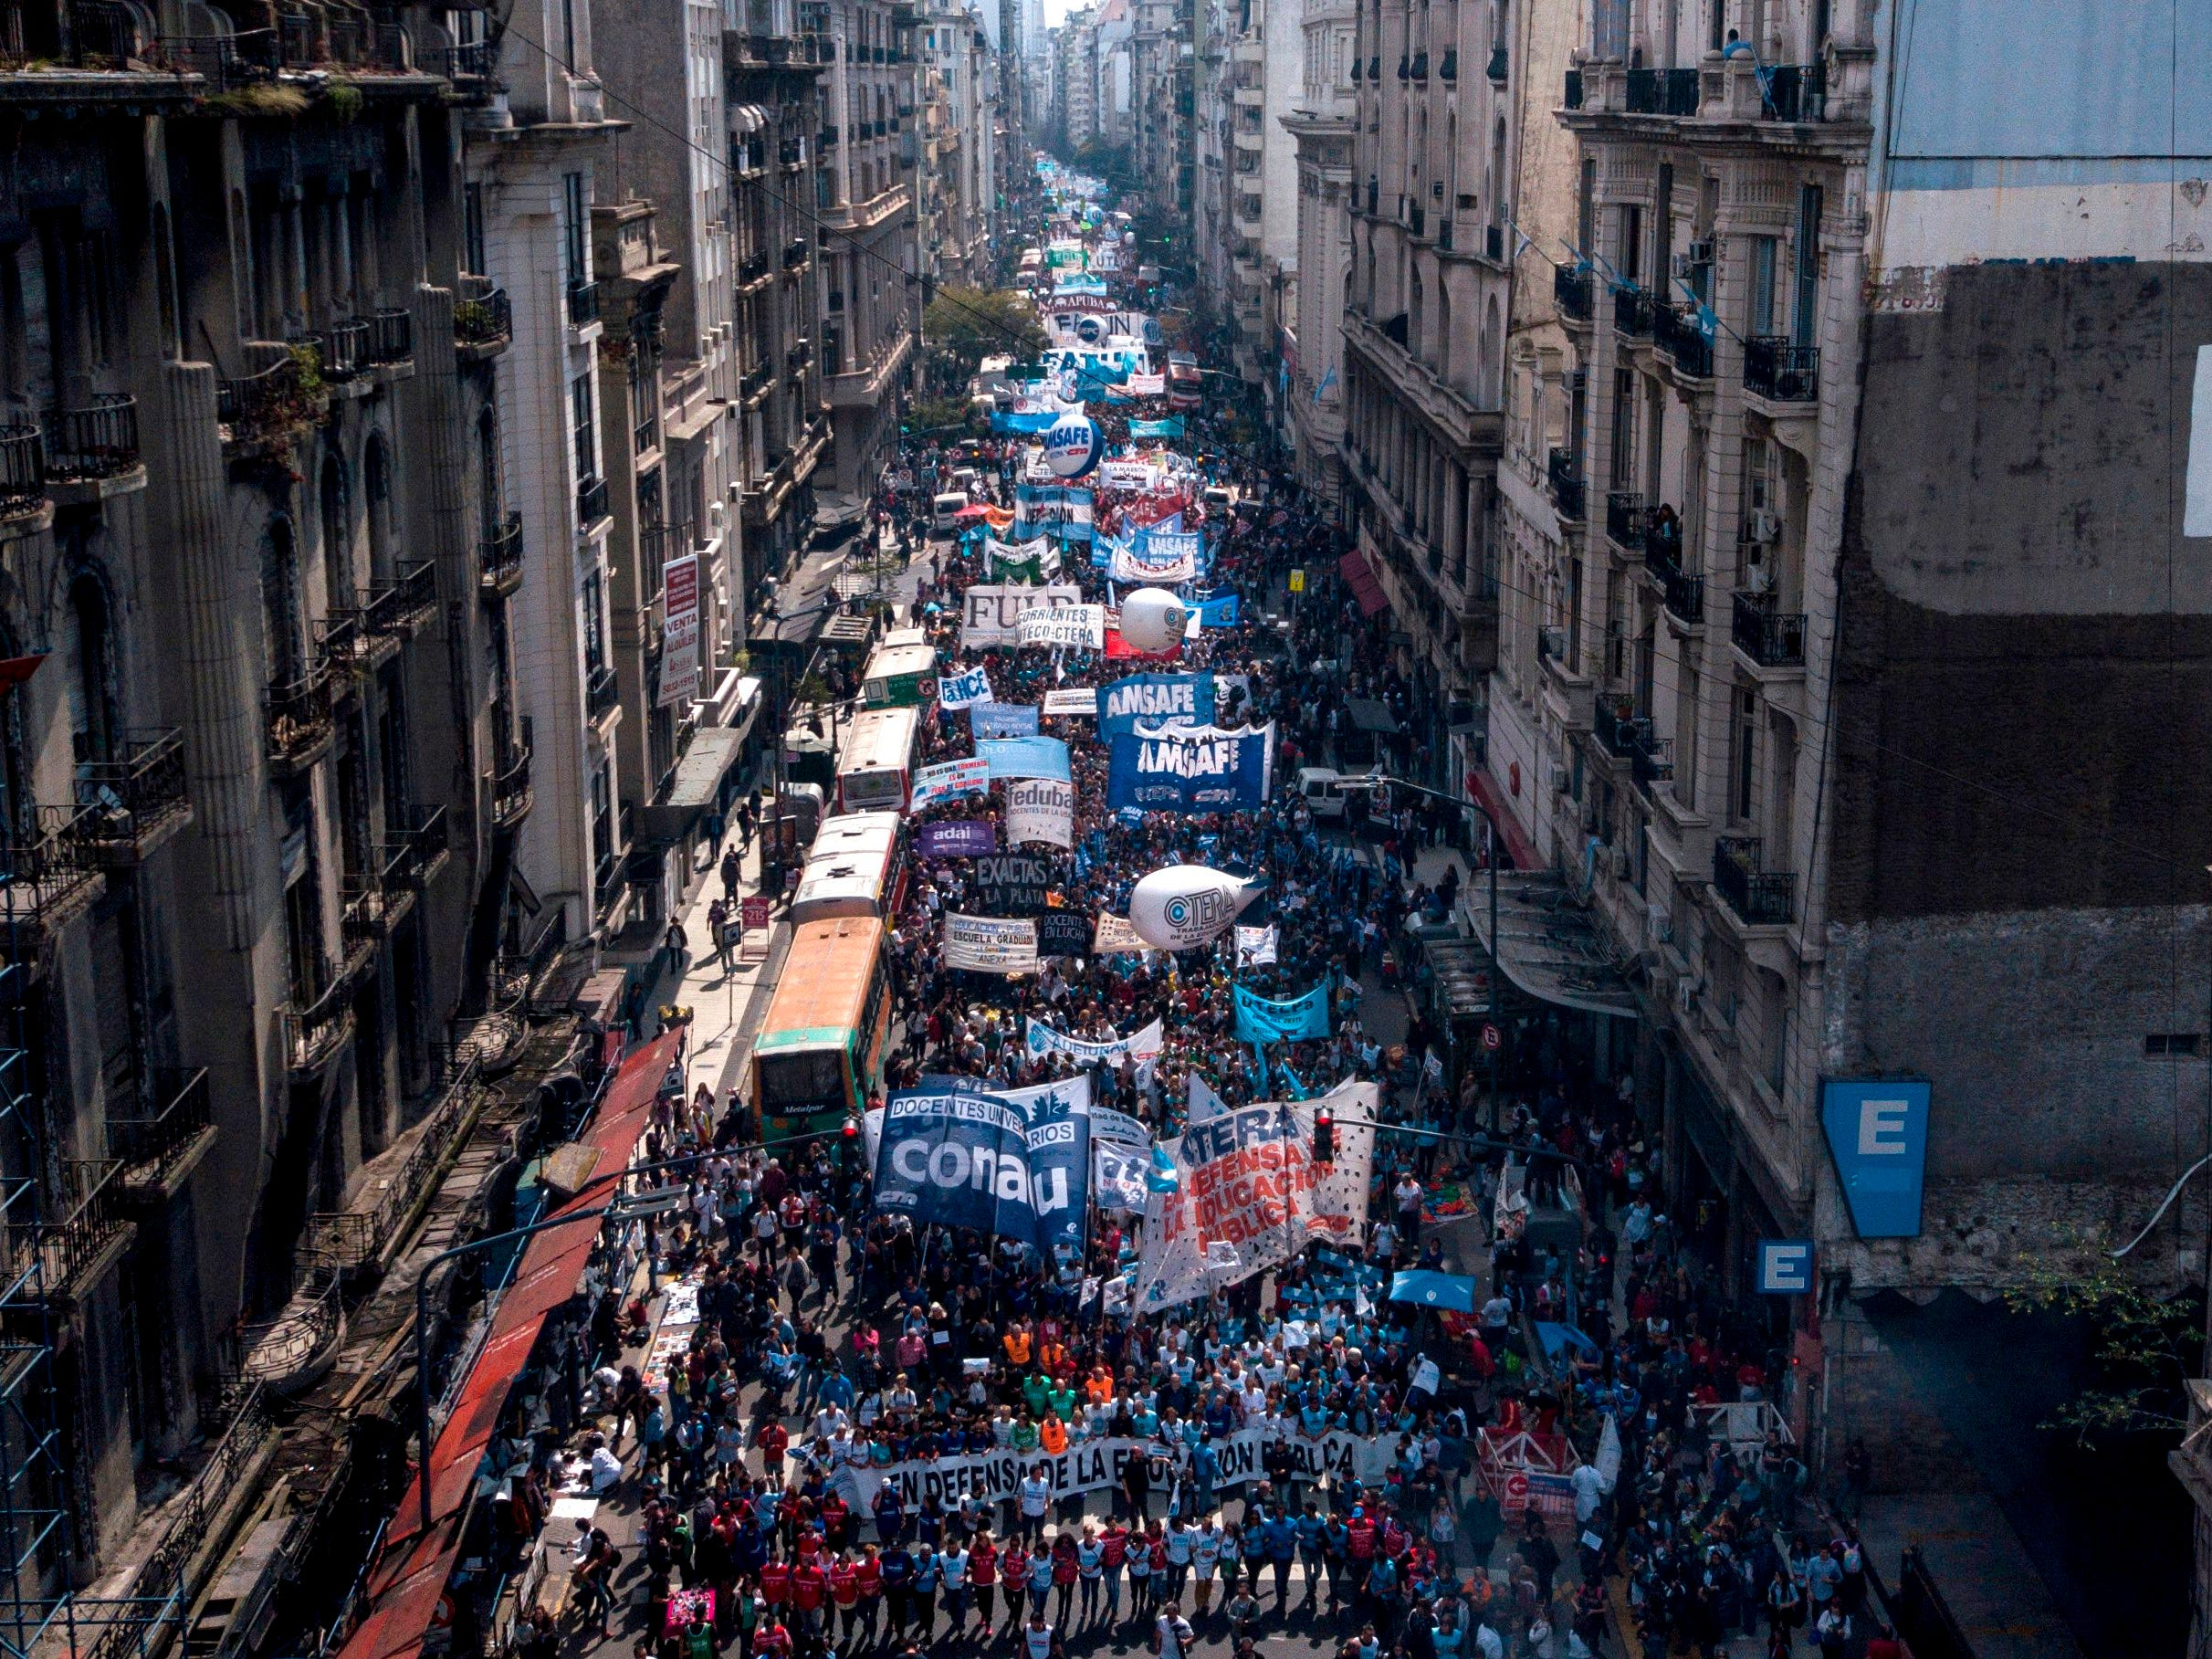 Argentine teachers march towards the Congress during a national strike in Buenos Aires, on September 13, 2018. - Teachers demand wage increase and reject budget cuts in Argentine public schools, as well as the agreement negotiated between the government and the International Monetary Fund .